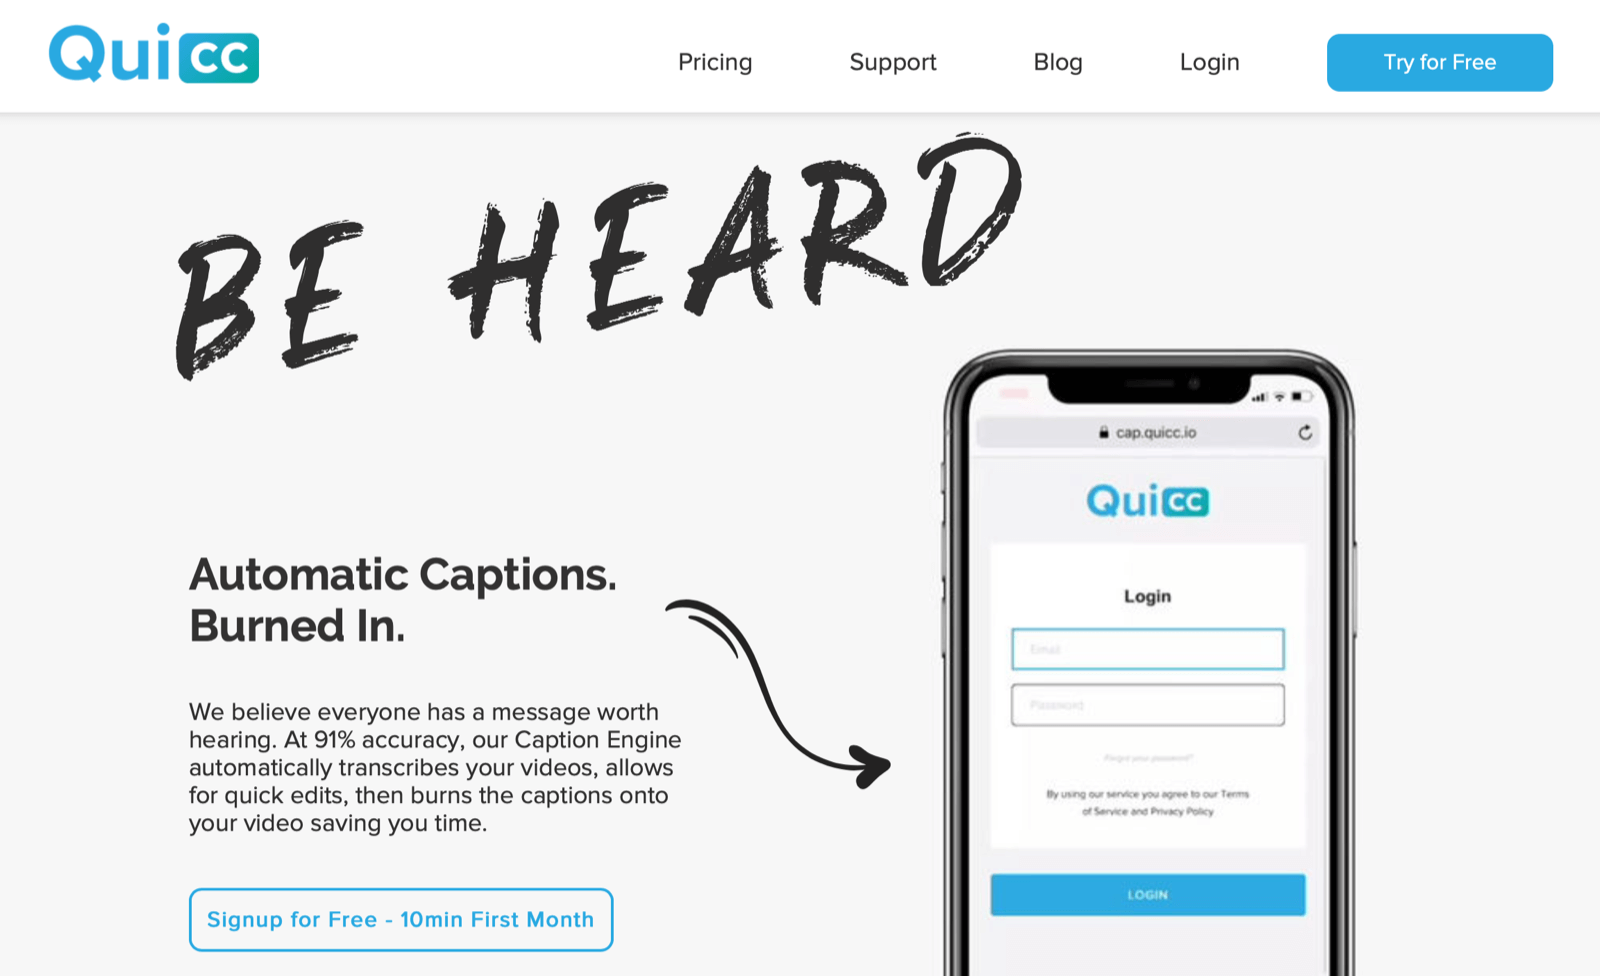 Social Media Marketing Podcast Discovery of the Week, quicc.io.